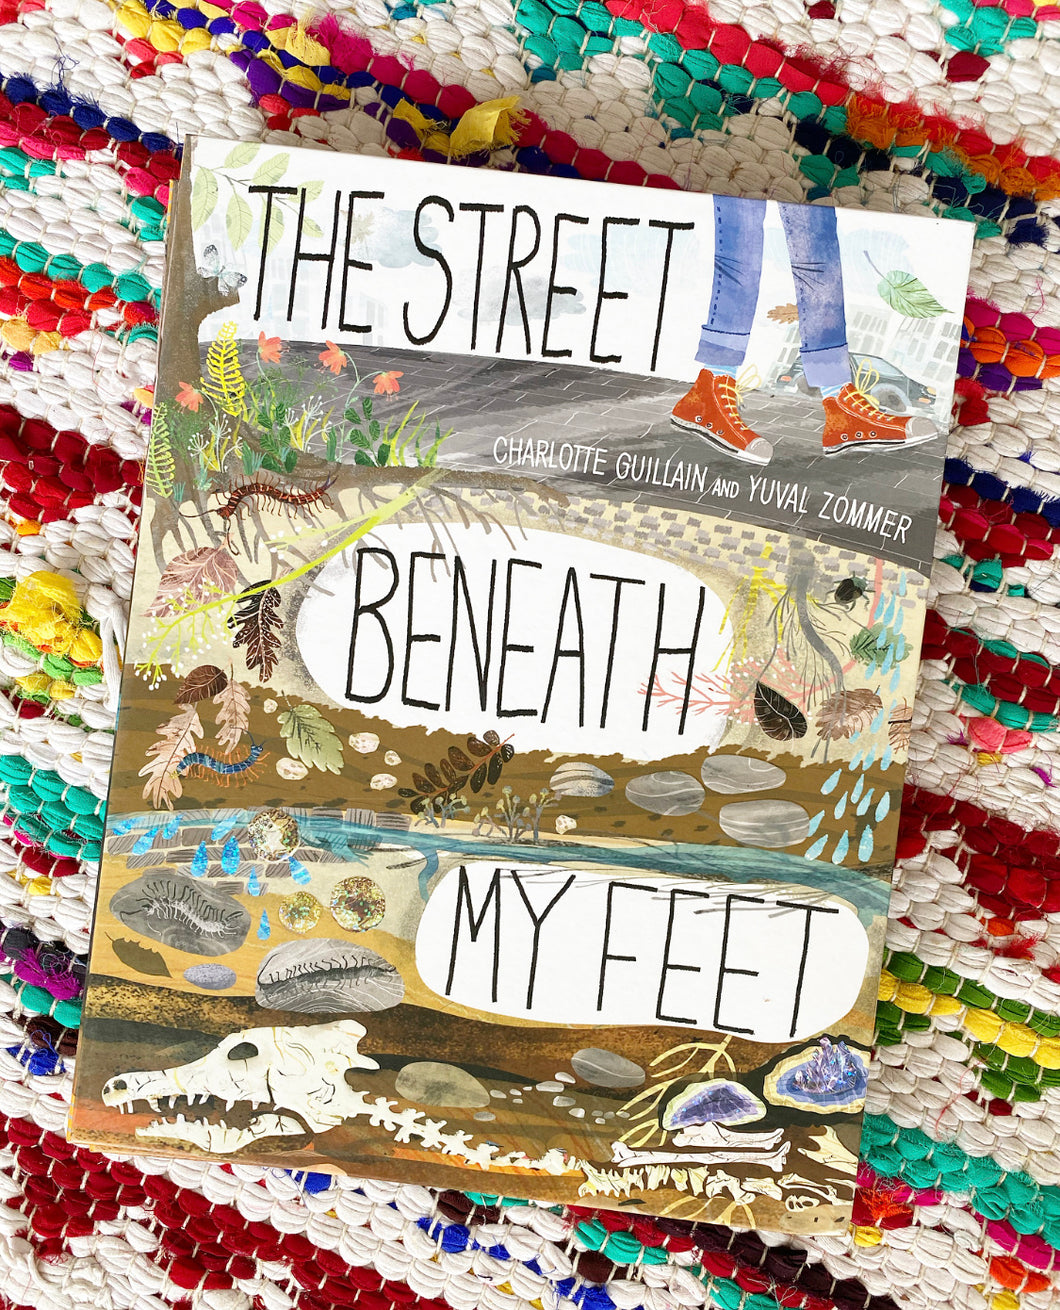 The Street Beneath My Feet | Guillain, Yuval Zommer